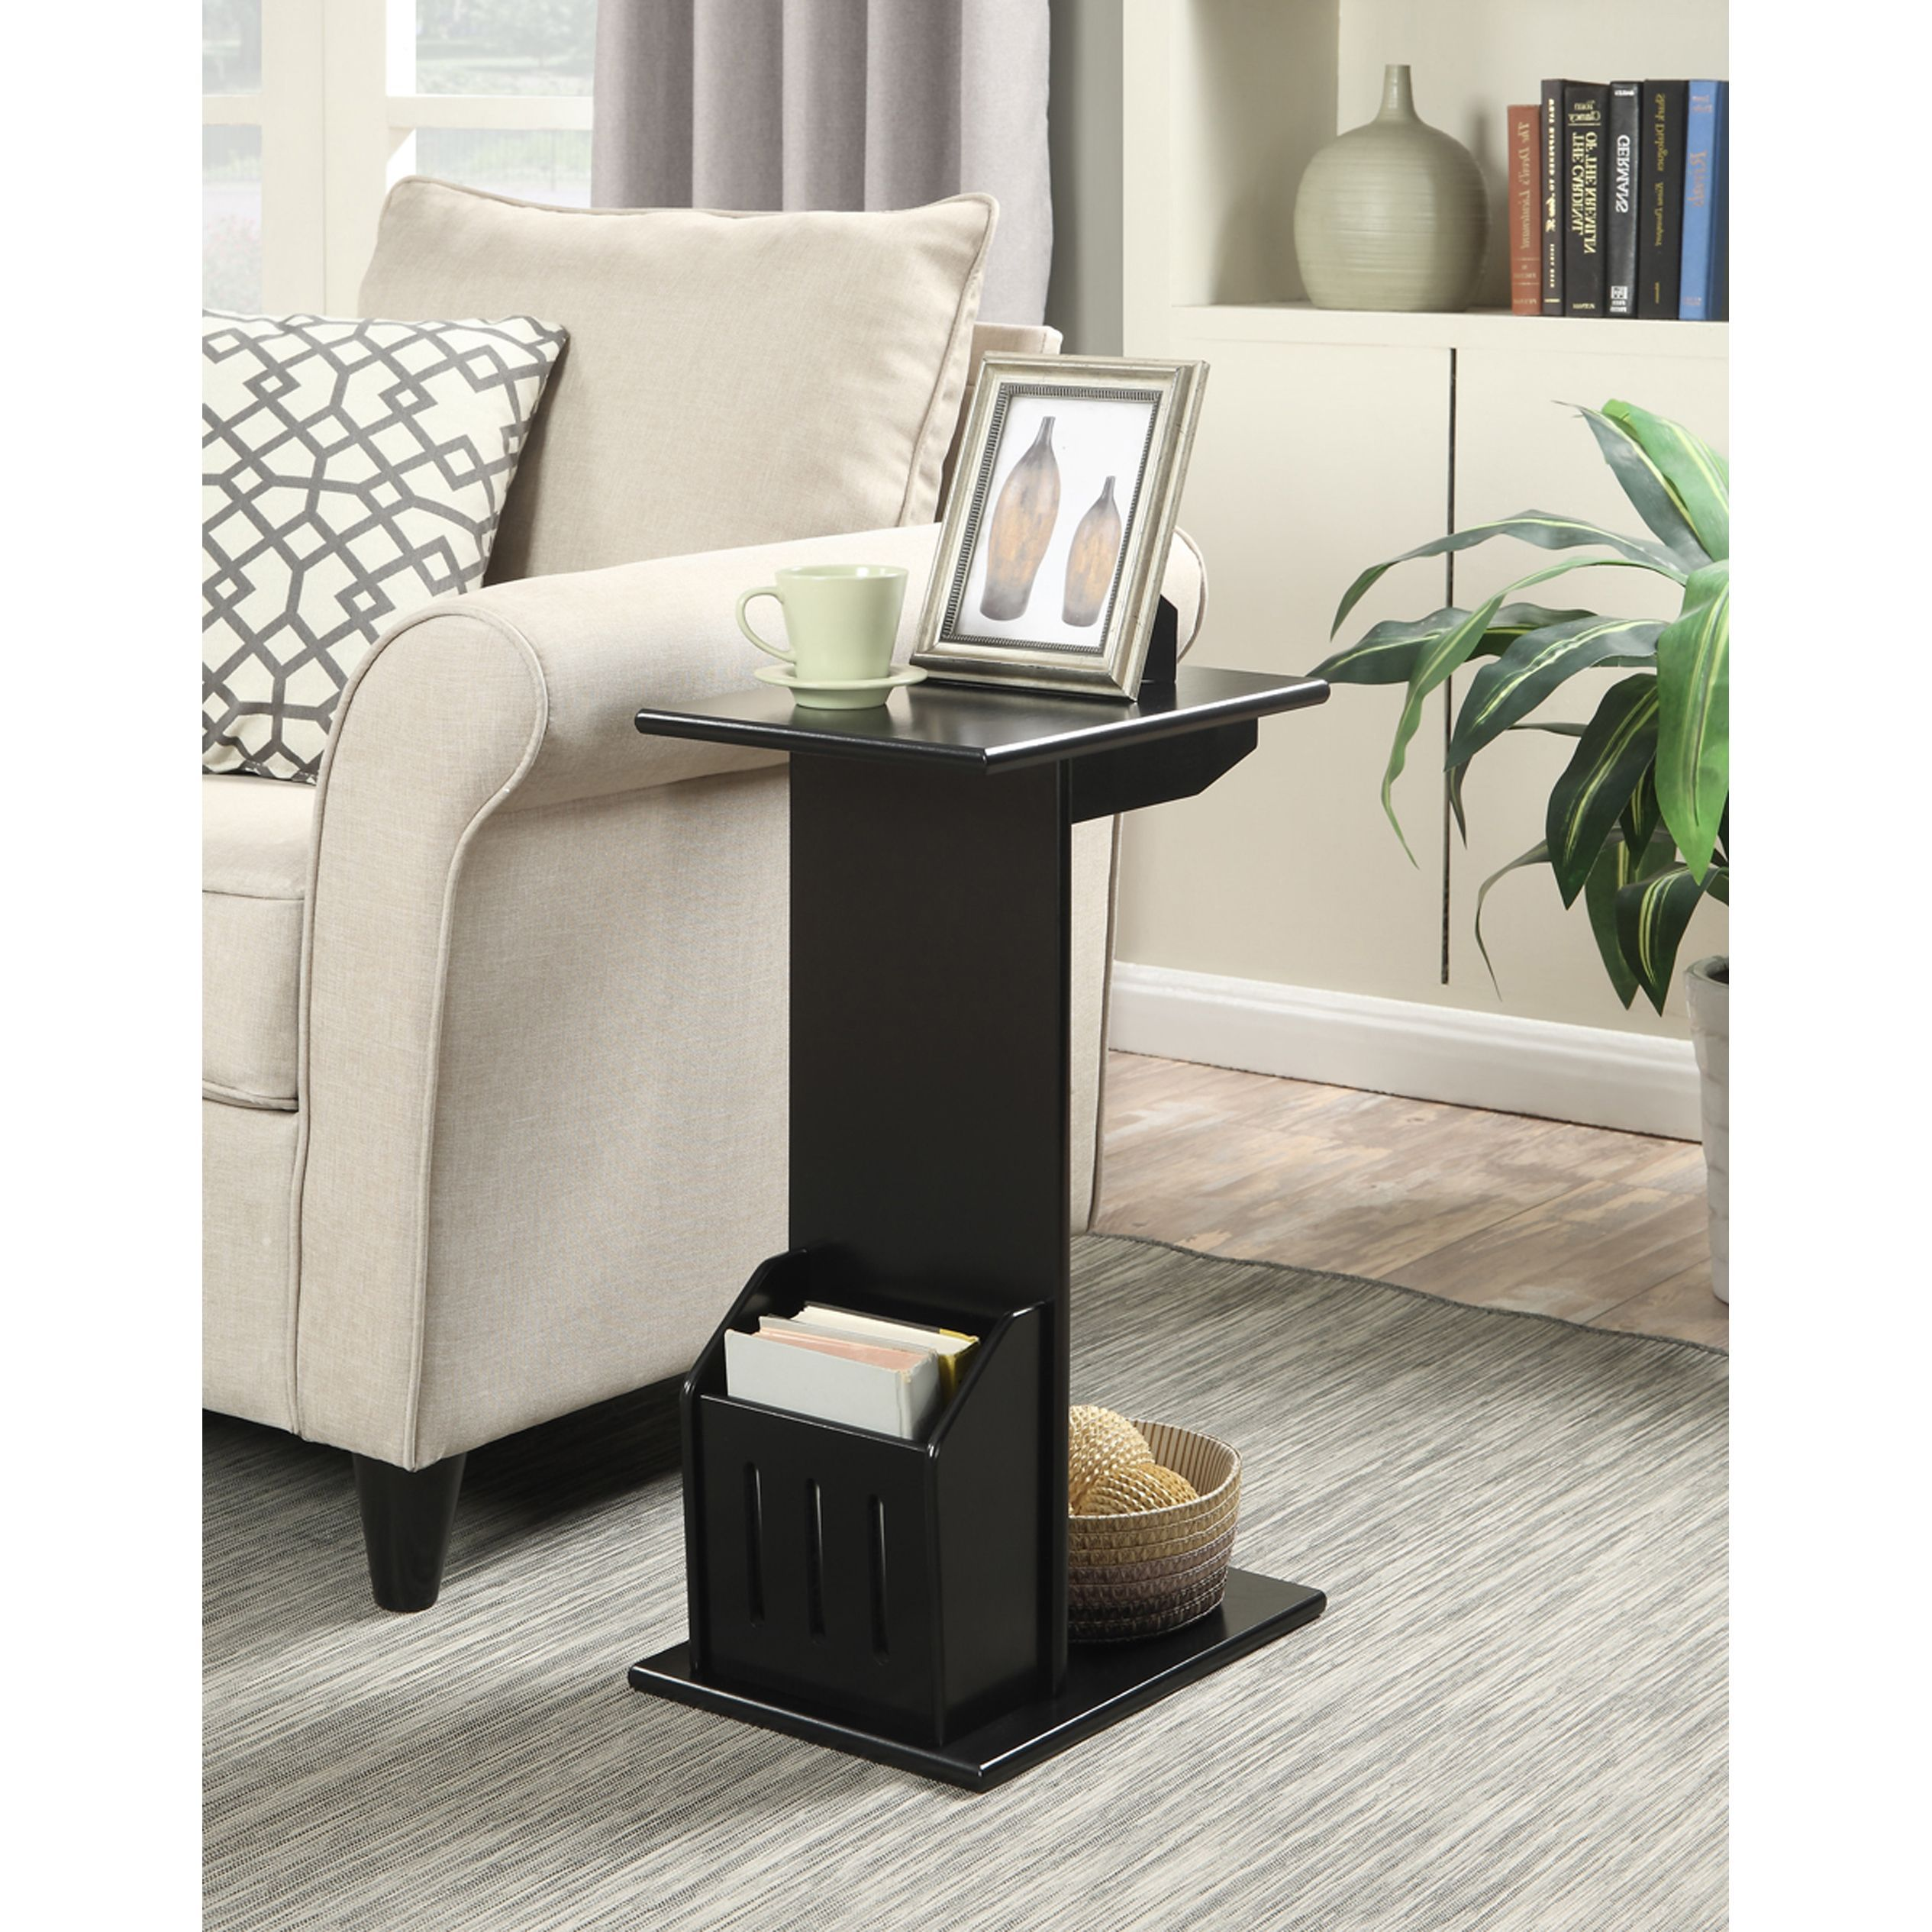 Convenience Concepts Designs2Go Abby Magazine Black and Mahogany Wood C-end Table (Black)